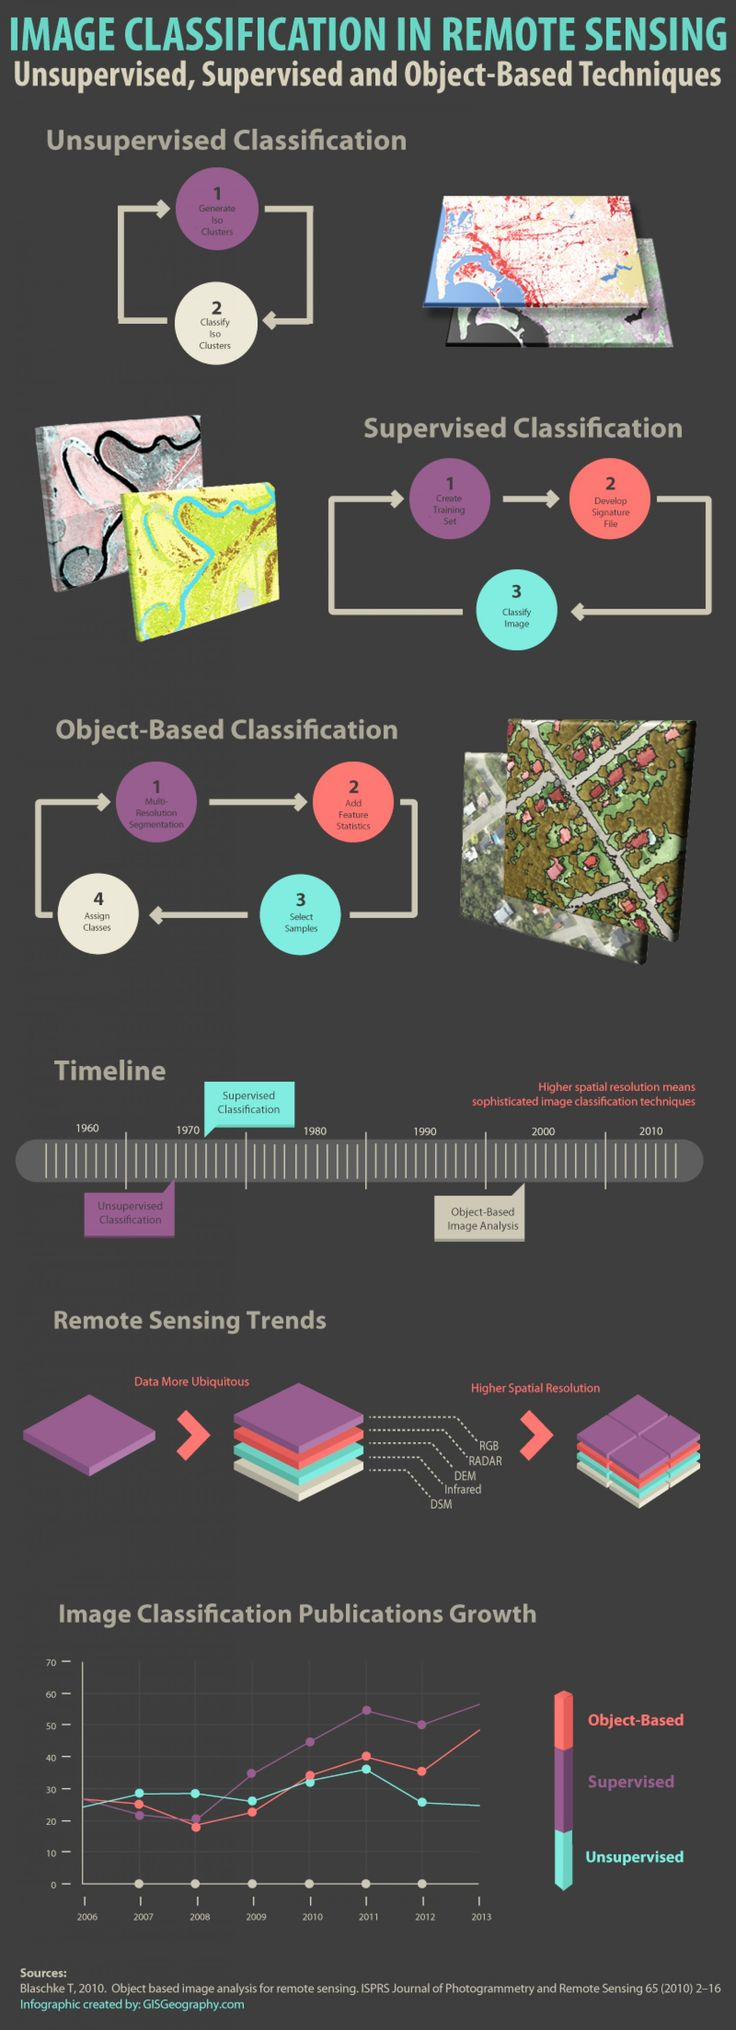 Image Classification Techniques in Remote Sensing Infographic